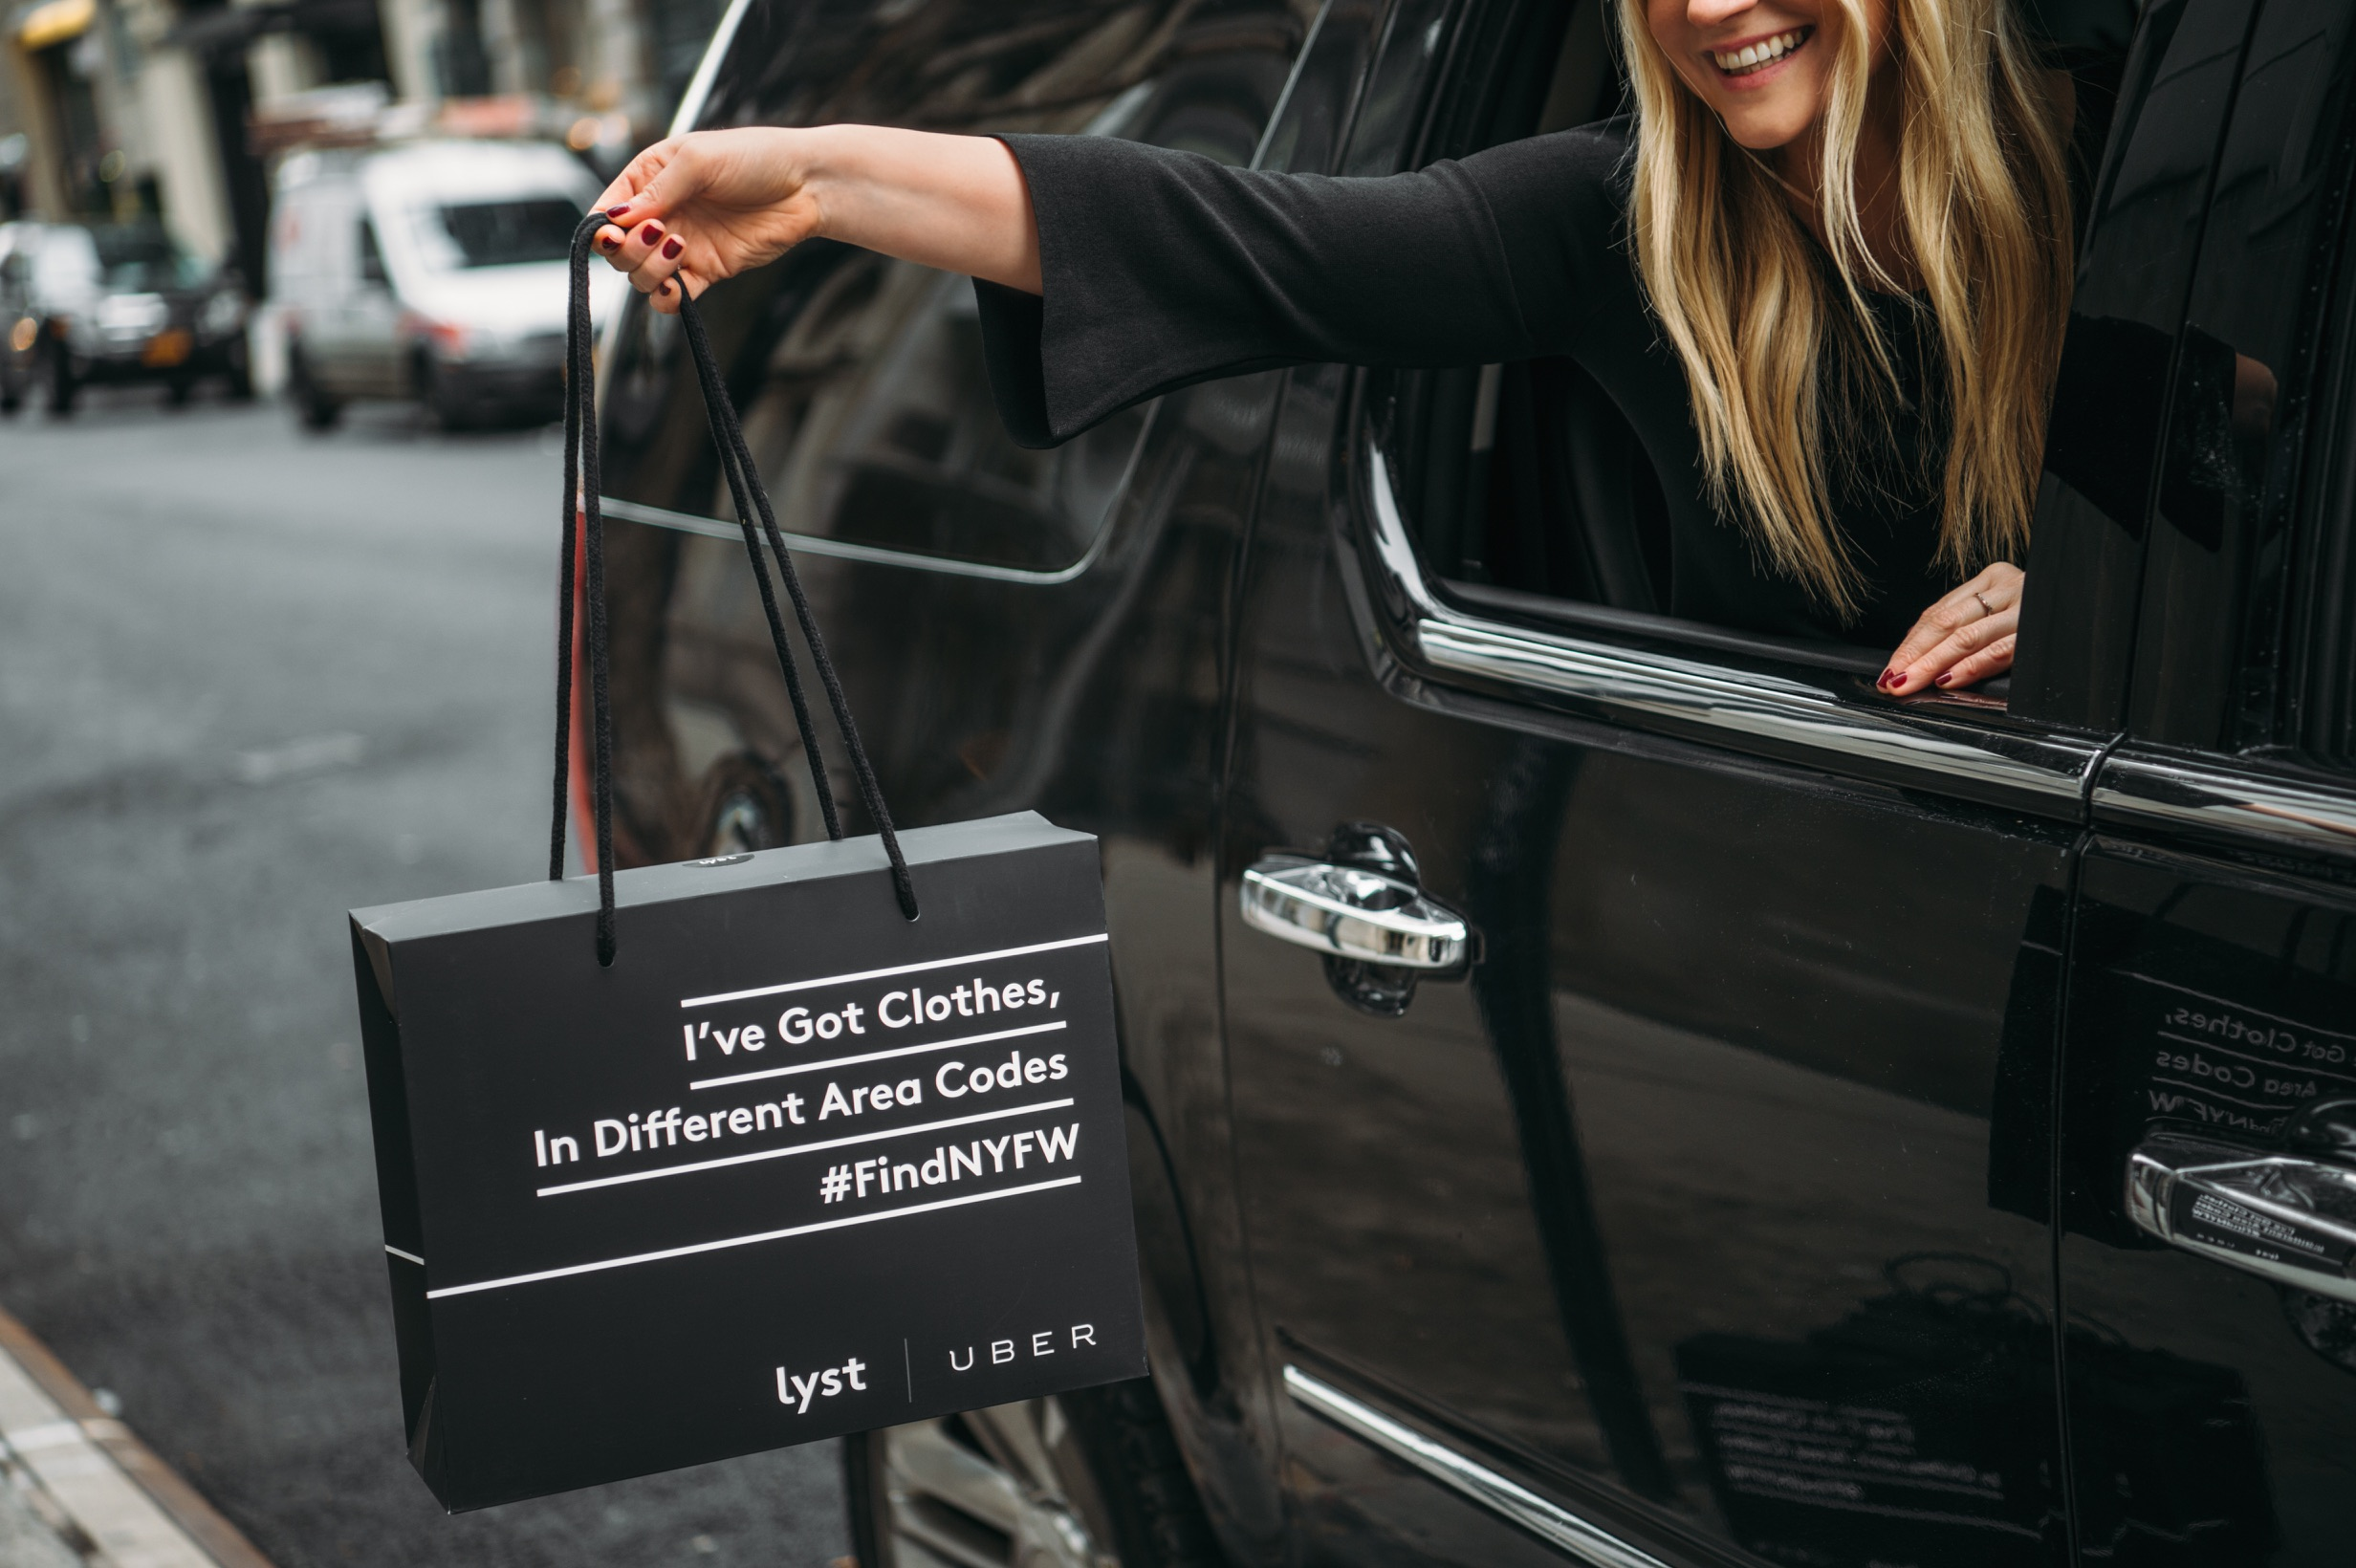 Lyst is giving away gift bags to New York Uber users during fashion week.